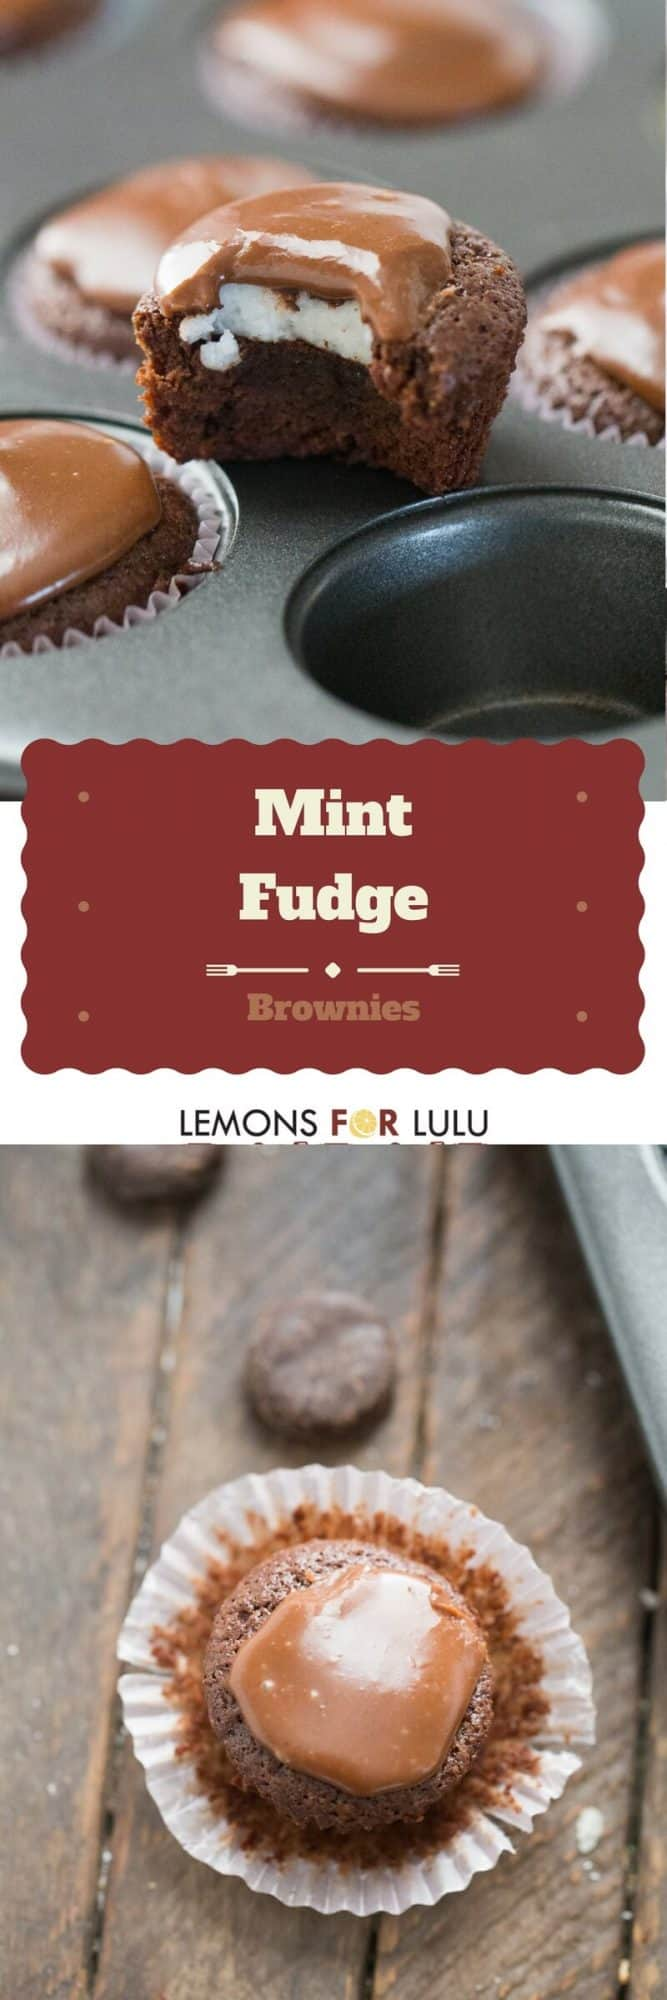 Need any easy treat? Try this mint fudge brownie recipe! Lots of chocolate and lots of mint!